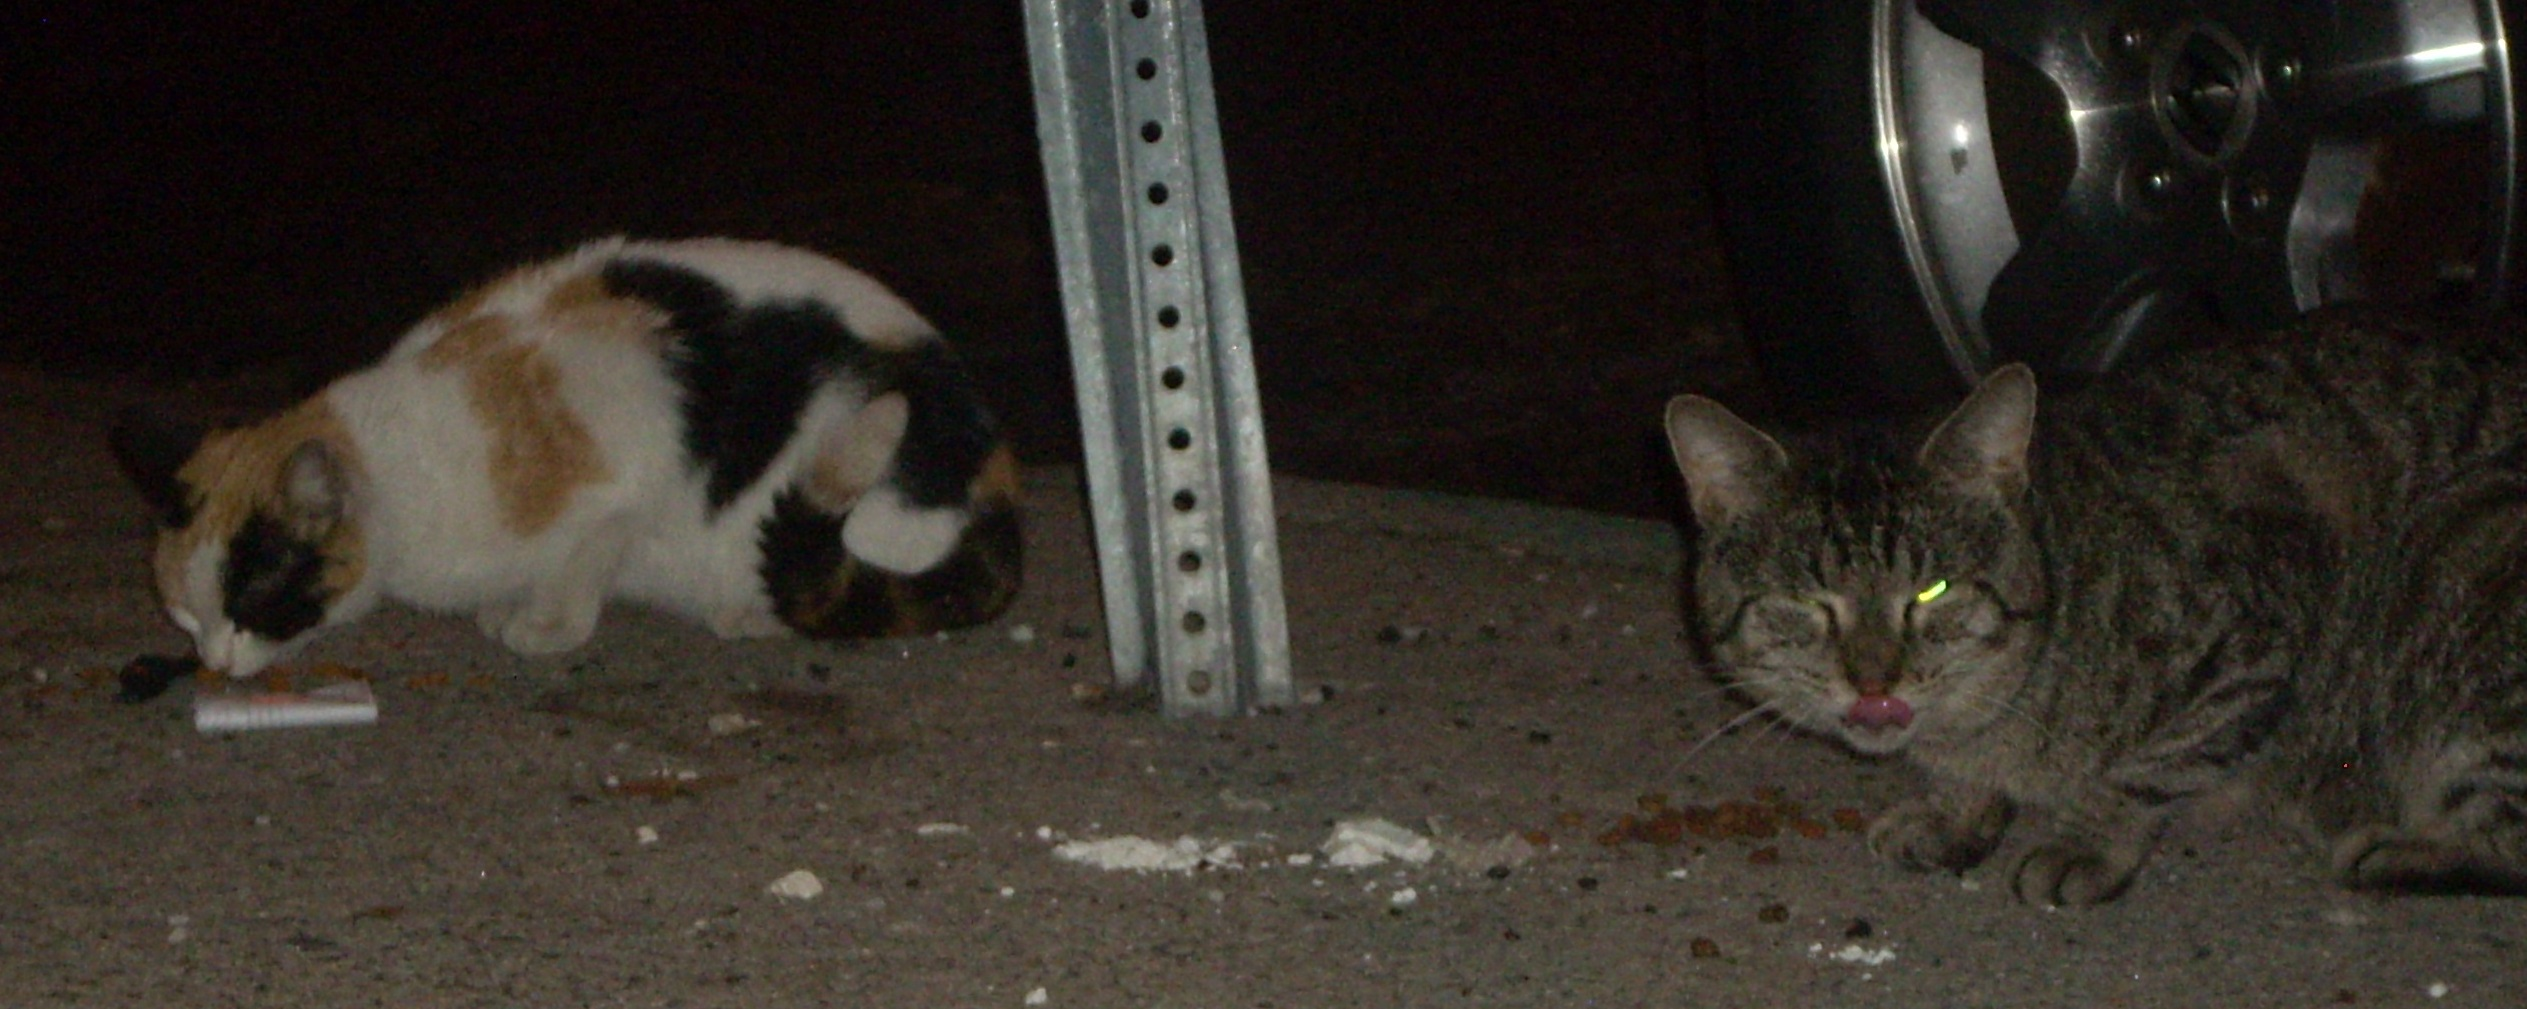 Community cats eating in street